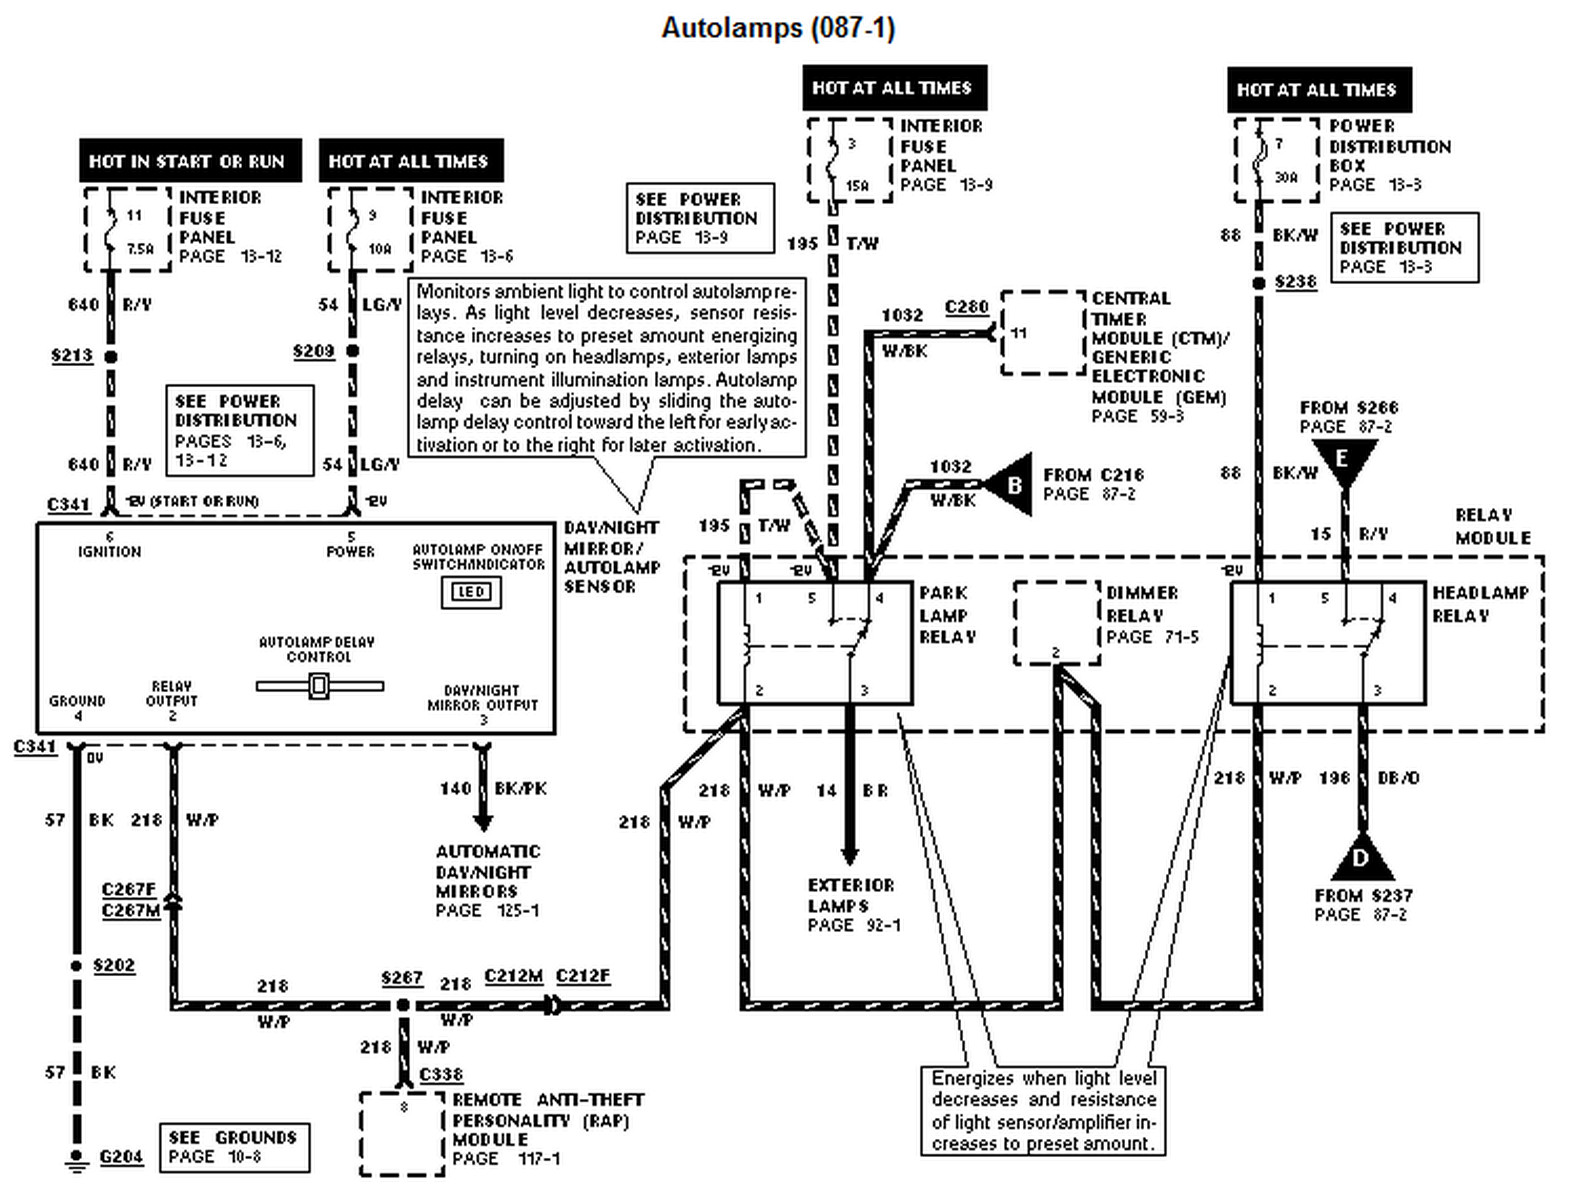 2001 Ford Crown Victoria Stereo Wiring Diagram 1996 Aerostar Todays 1997 Diagrams Simple Schema 1990